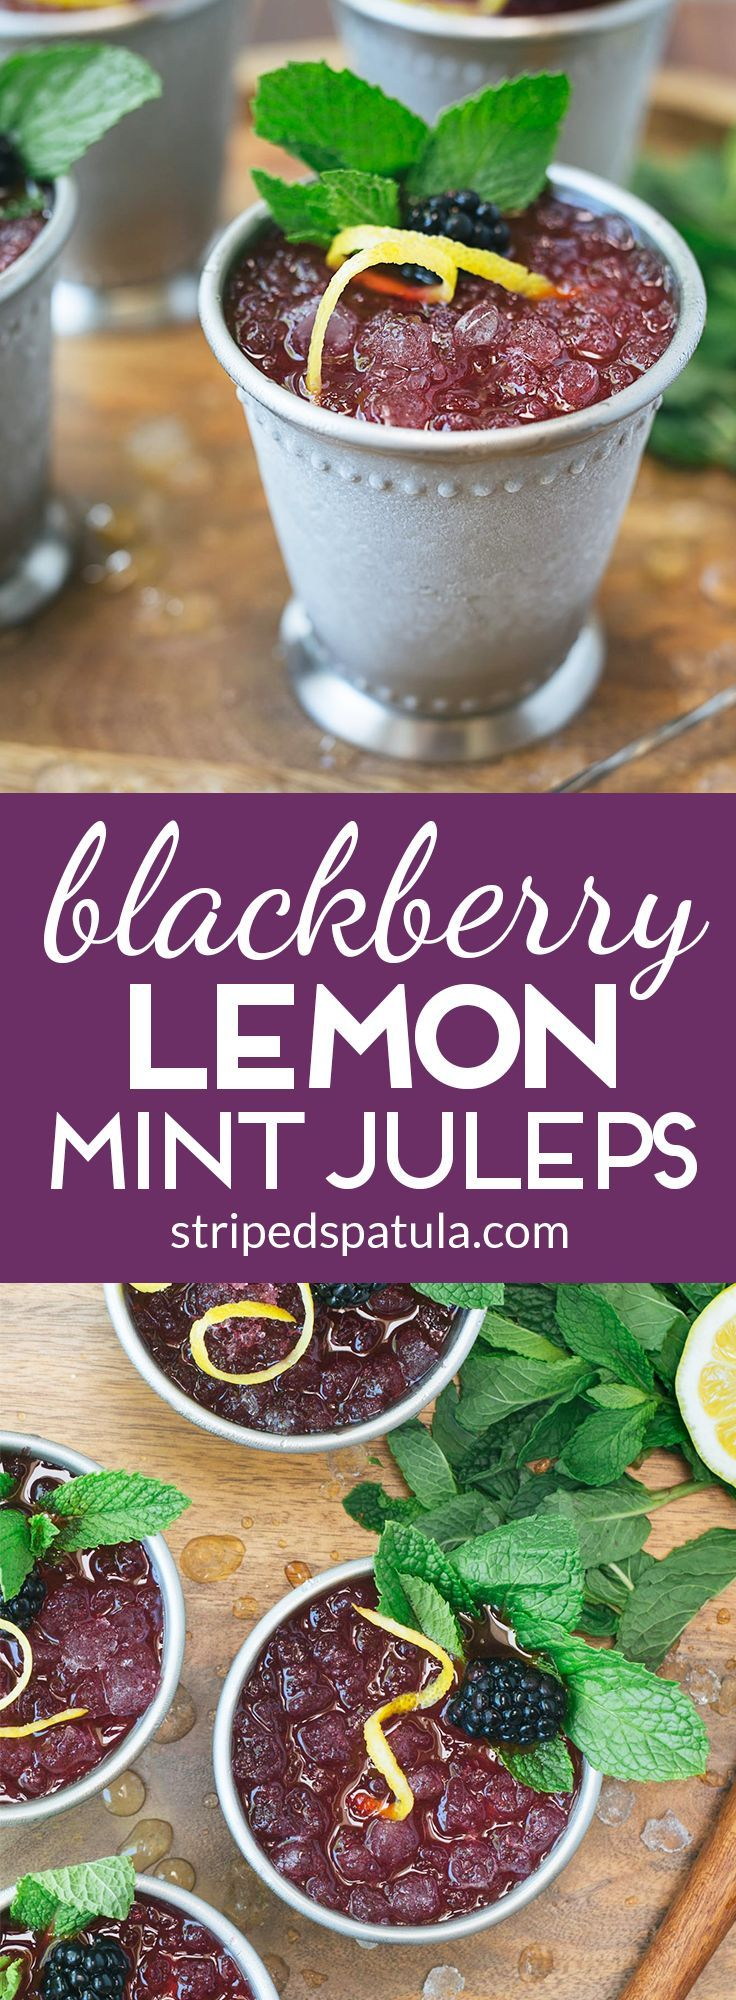 These ice cold Blackberry-Lemon Mint Juleps are a fragrant and refreshing twist on a classic. Perfect for sipping on a warm day!